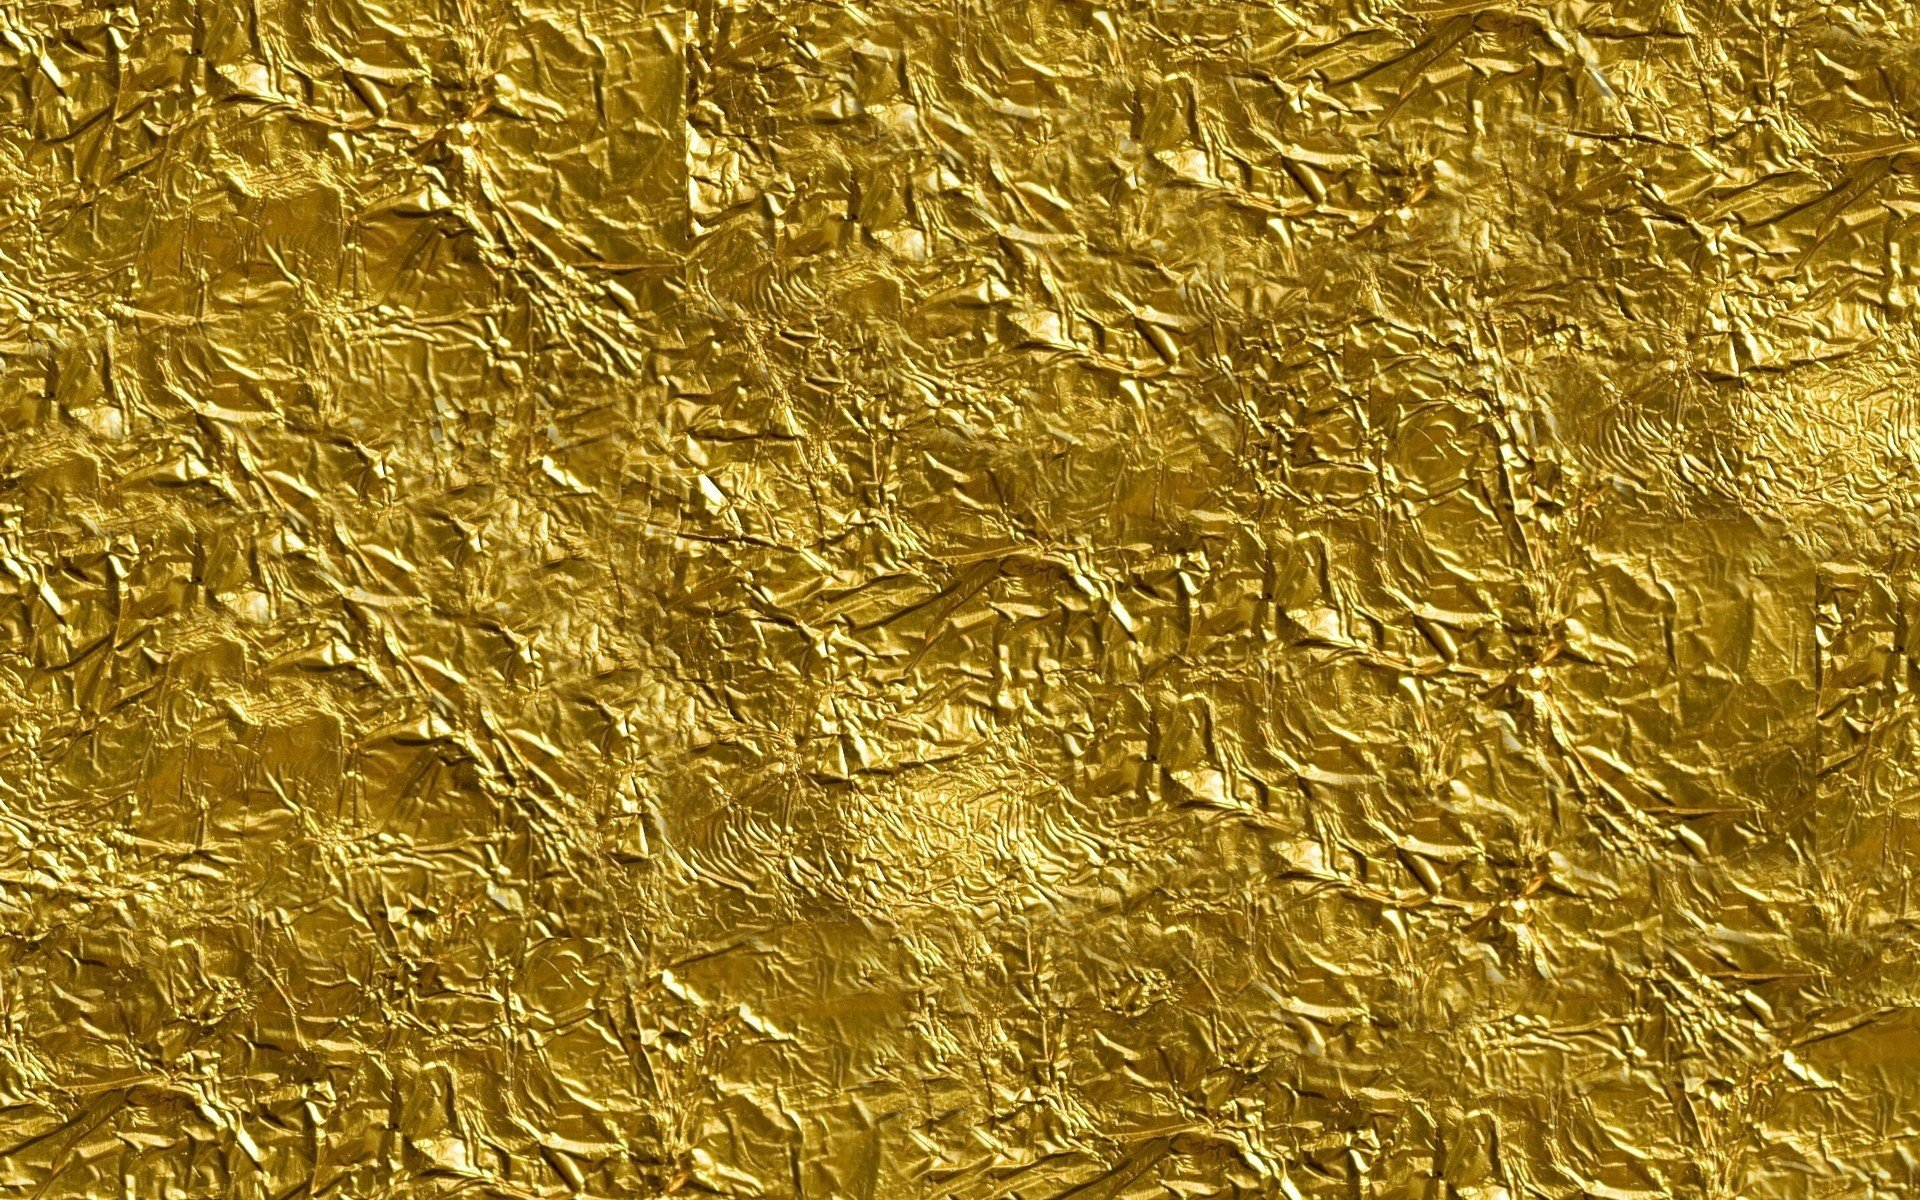 Gold Foil Texture Hd Wallpaper Wallpaper List 1920x1200